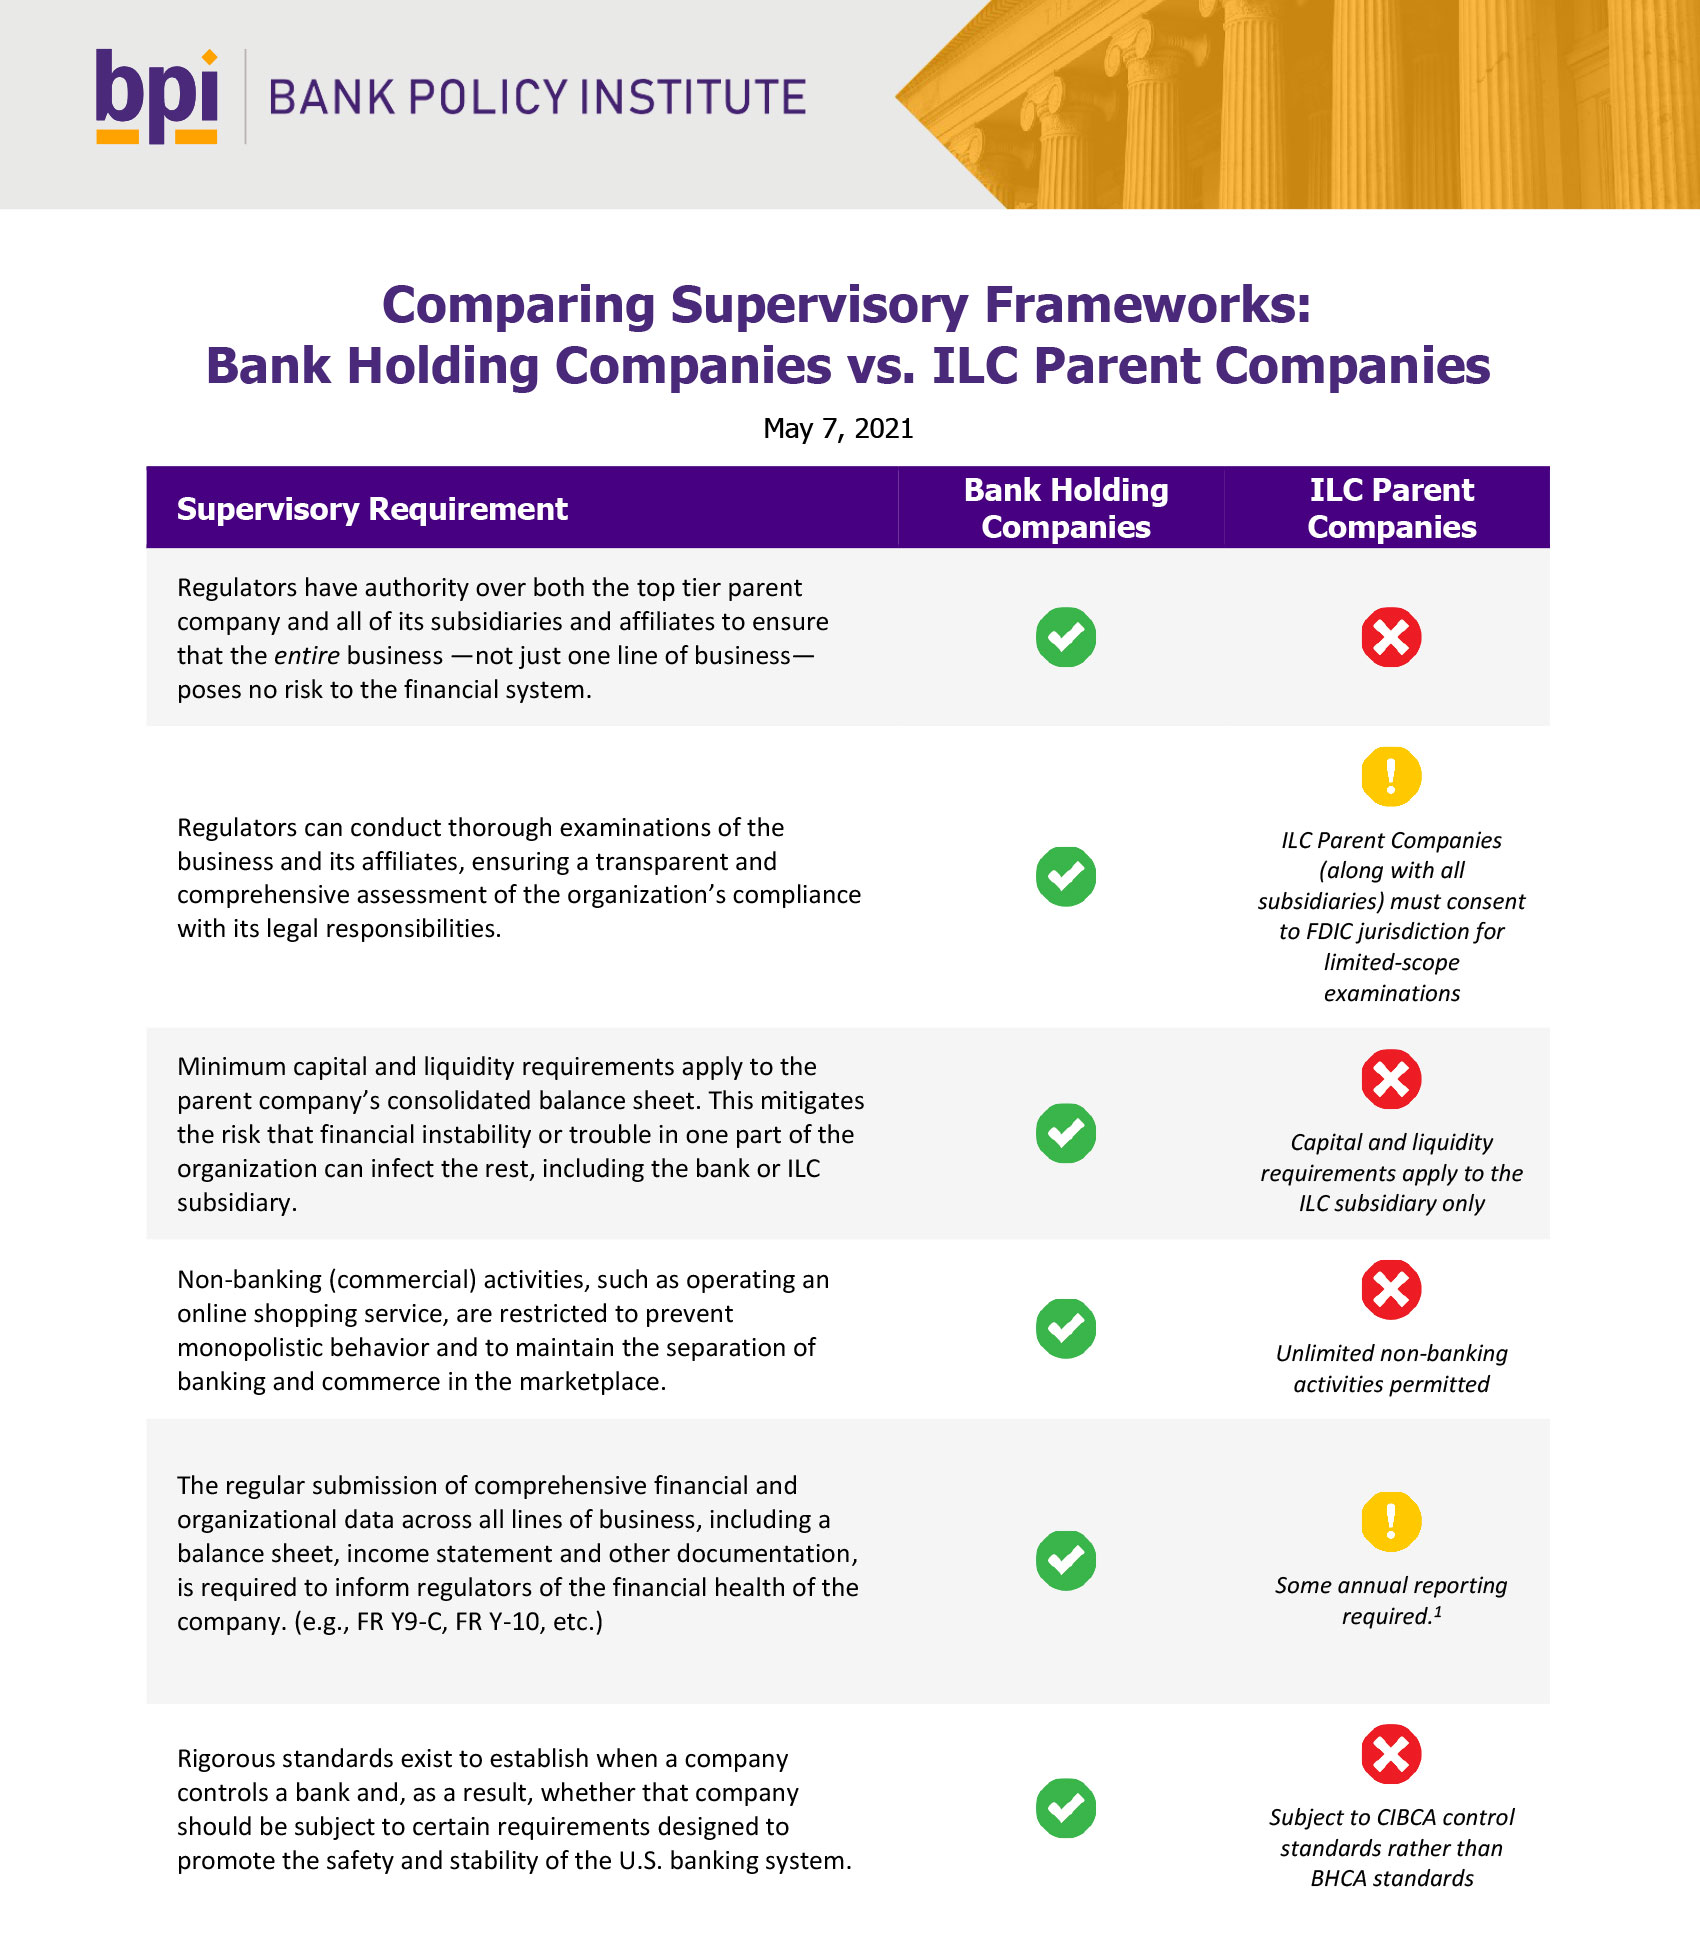 Image of Table for Comparing Supervisory Frameworks BHCs vs ILC Parent Companies